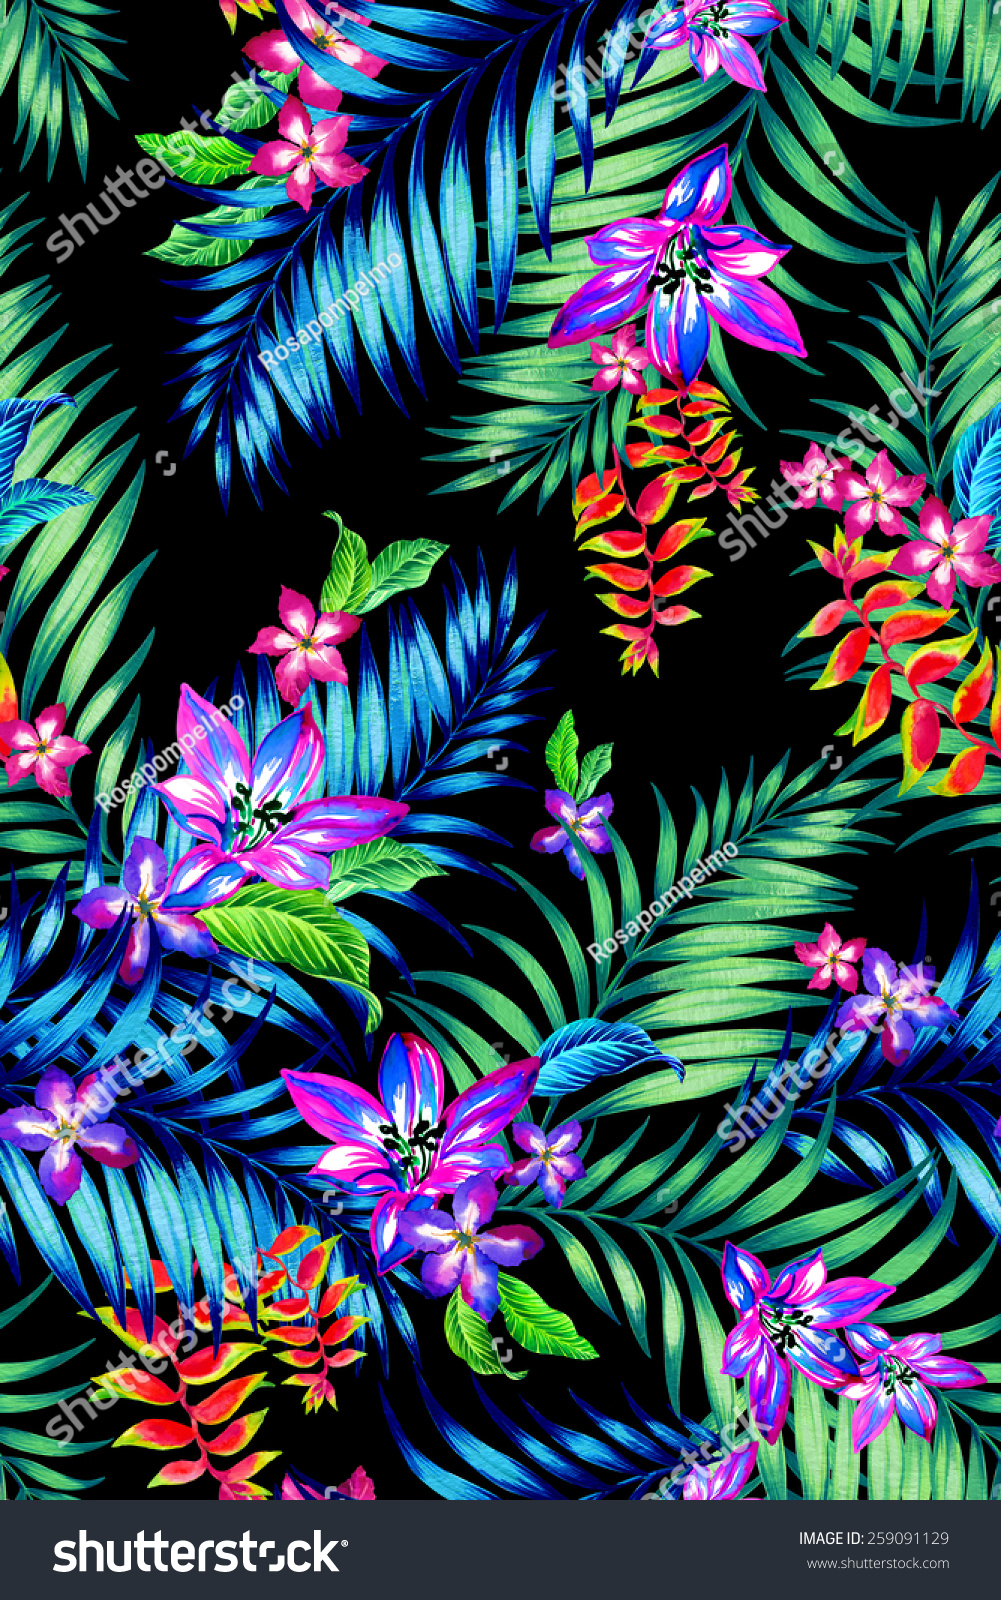 Seamless Floral Tropical Print Midnight Exotic Flowers